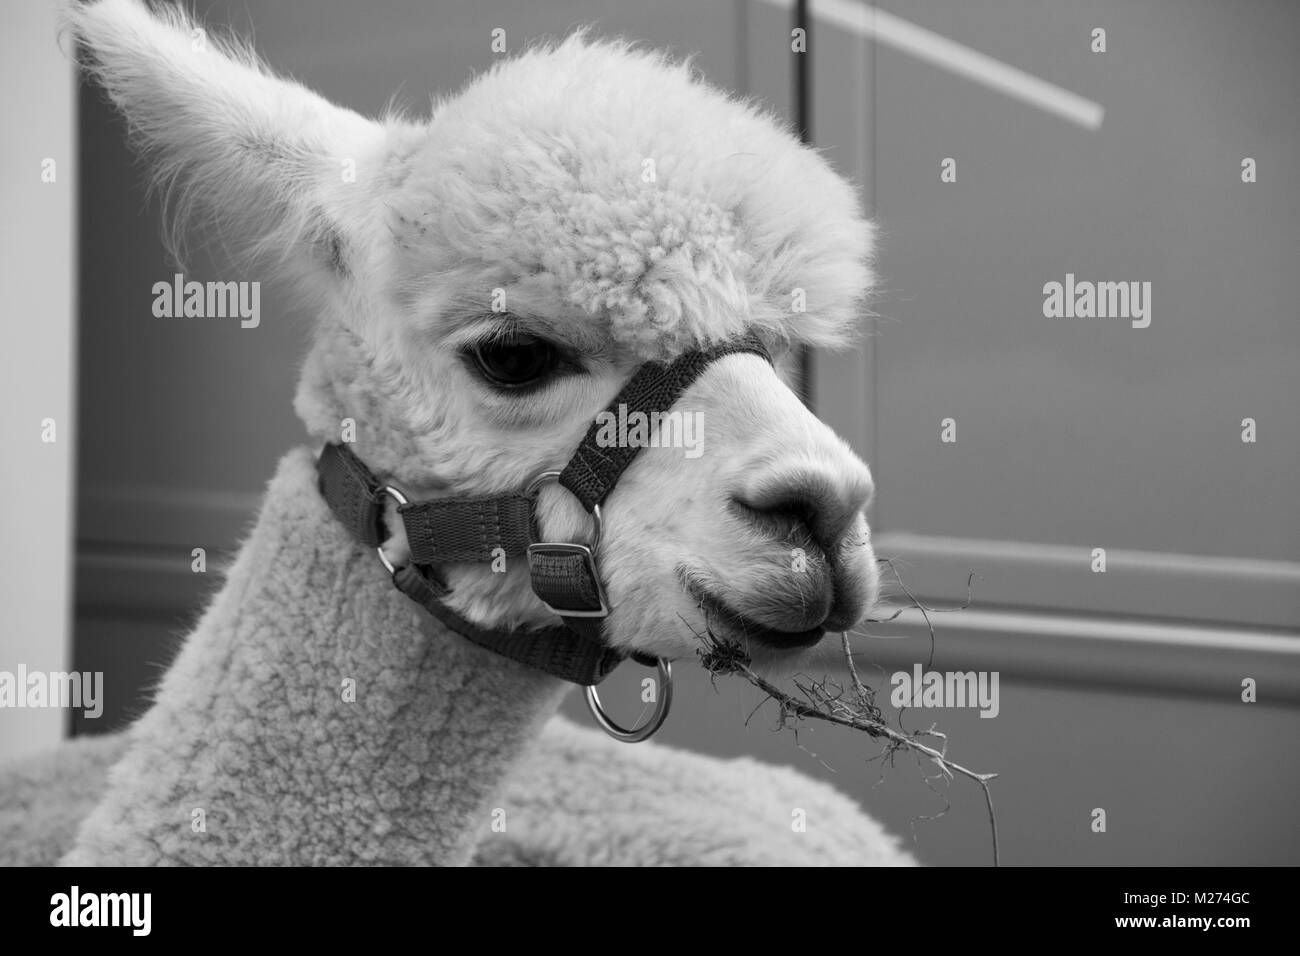 An alpaca, photographed in black and white, chewing a twig at a country show in Hampshire - Stock Image